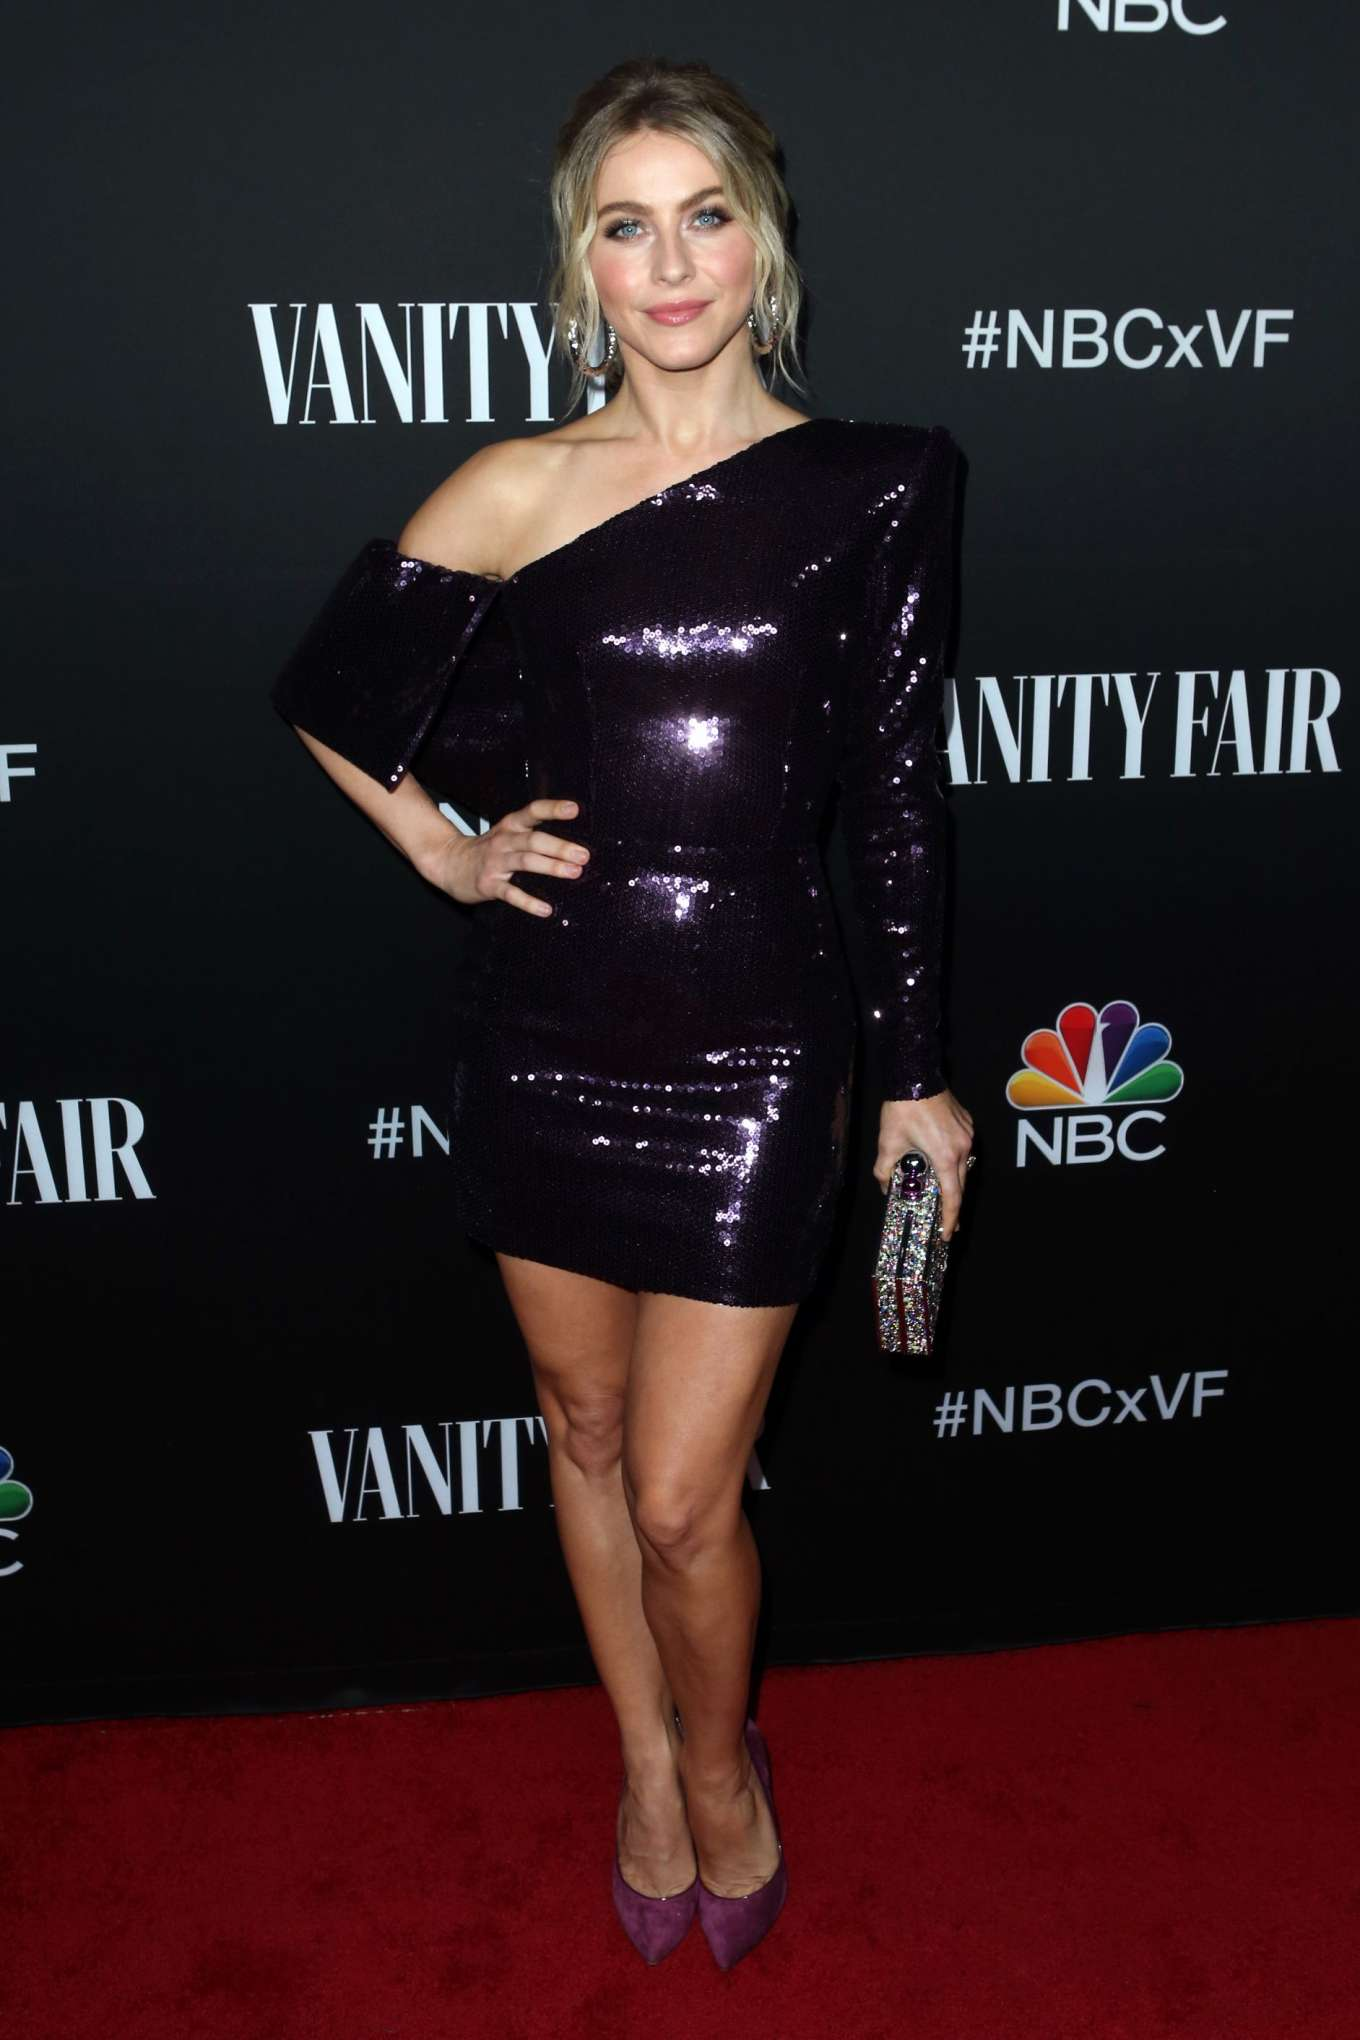 Julianne Hough 2019 : Julianne Hough – NBC and Vanity Fairs Celebration Of The Season-06